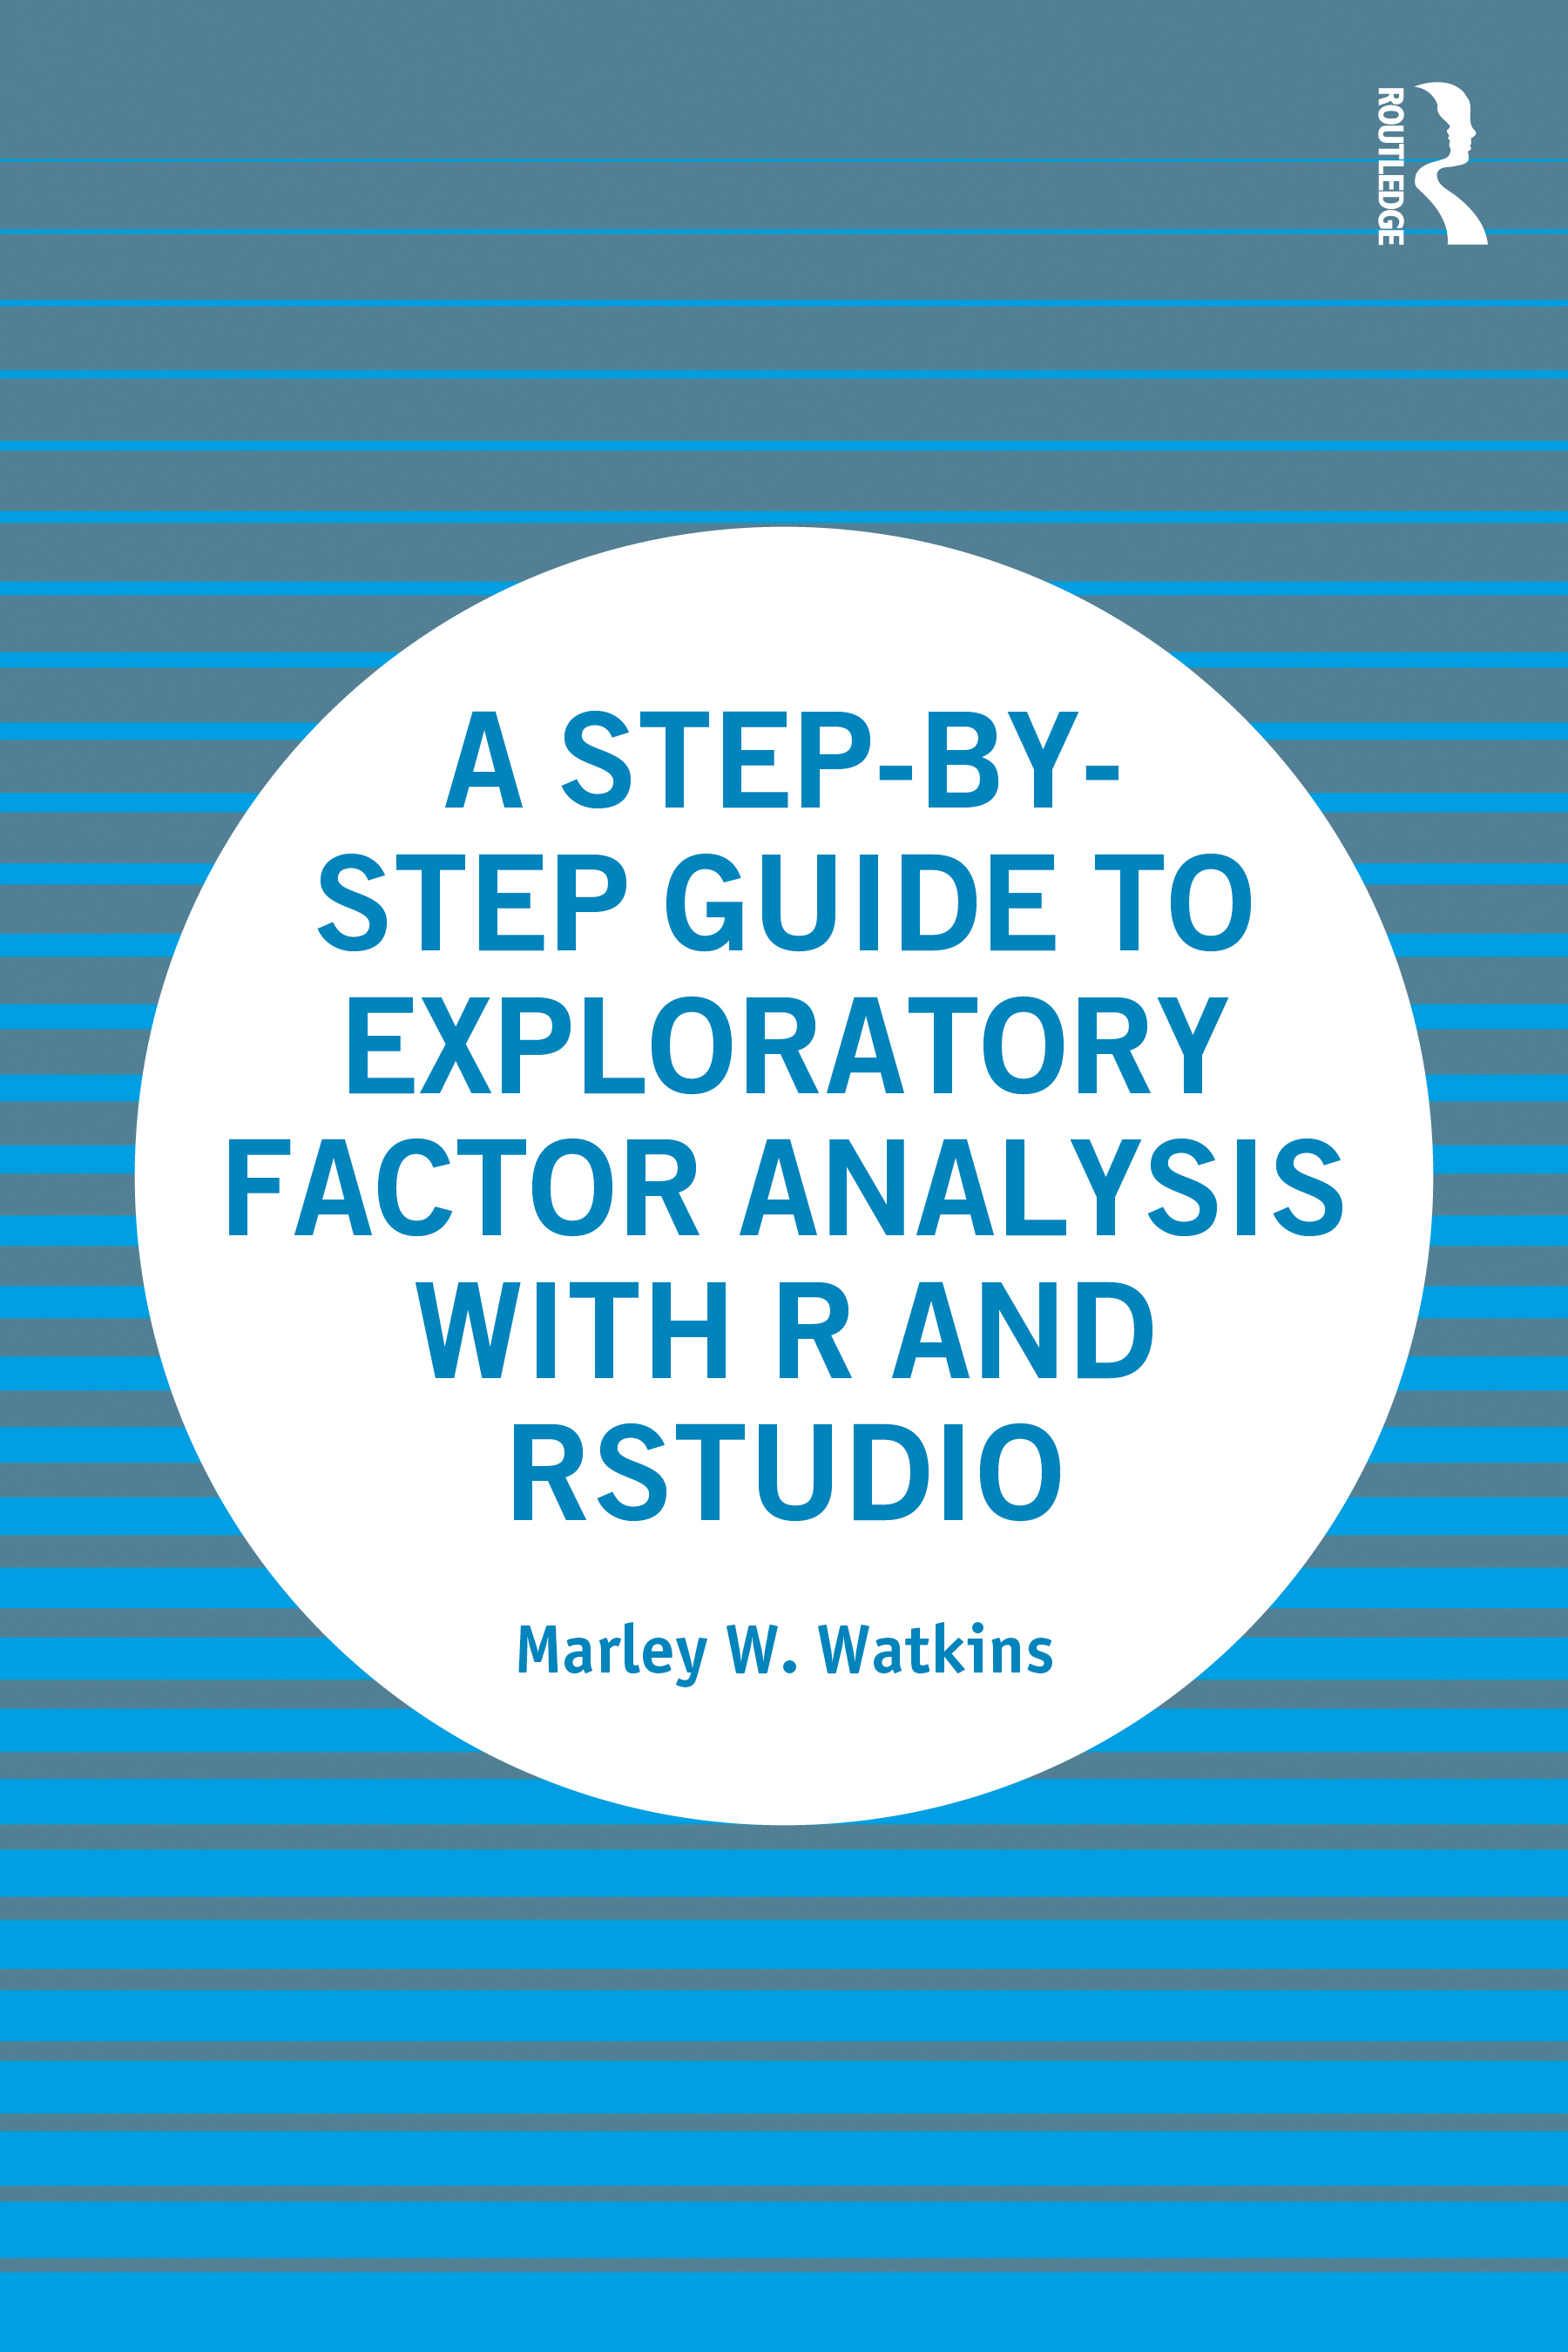 A Step By Step Guide To Exploratory Factor Analysis With R And Rstudio